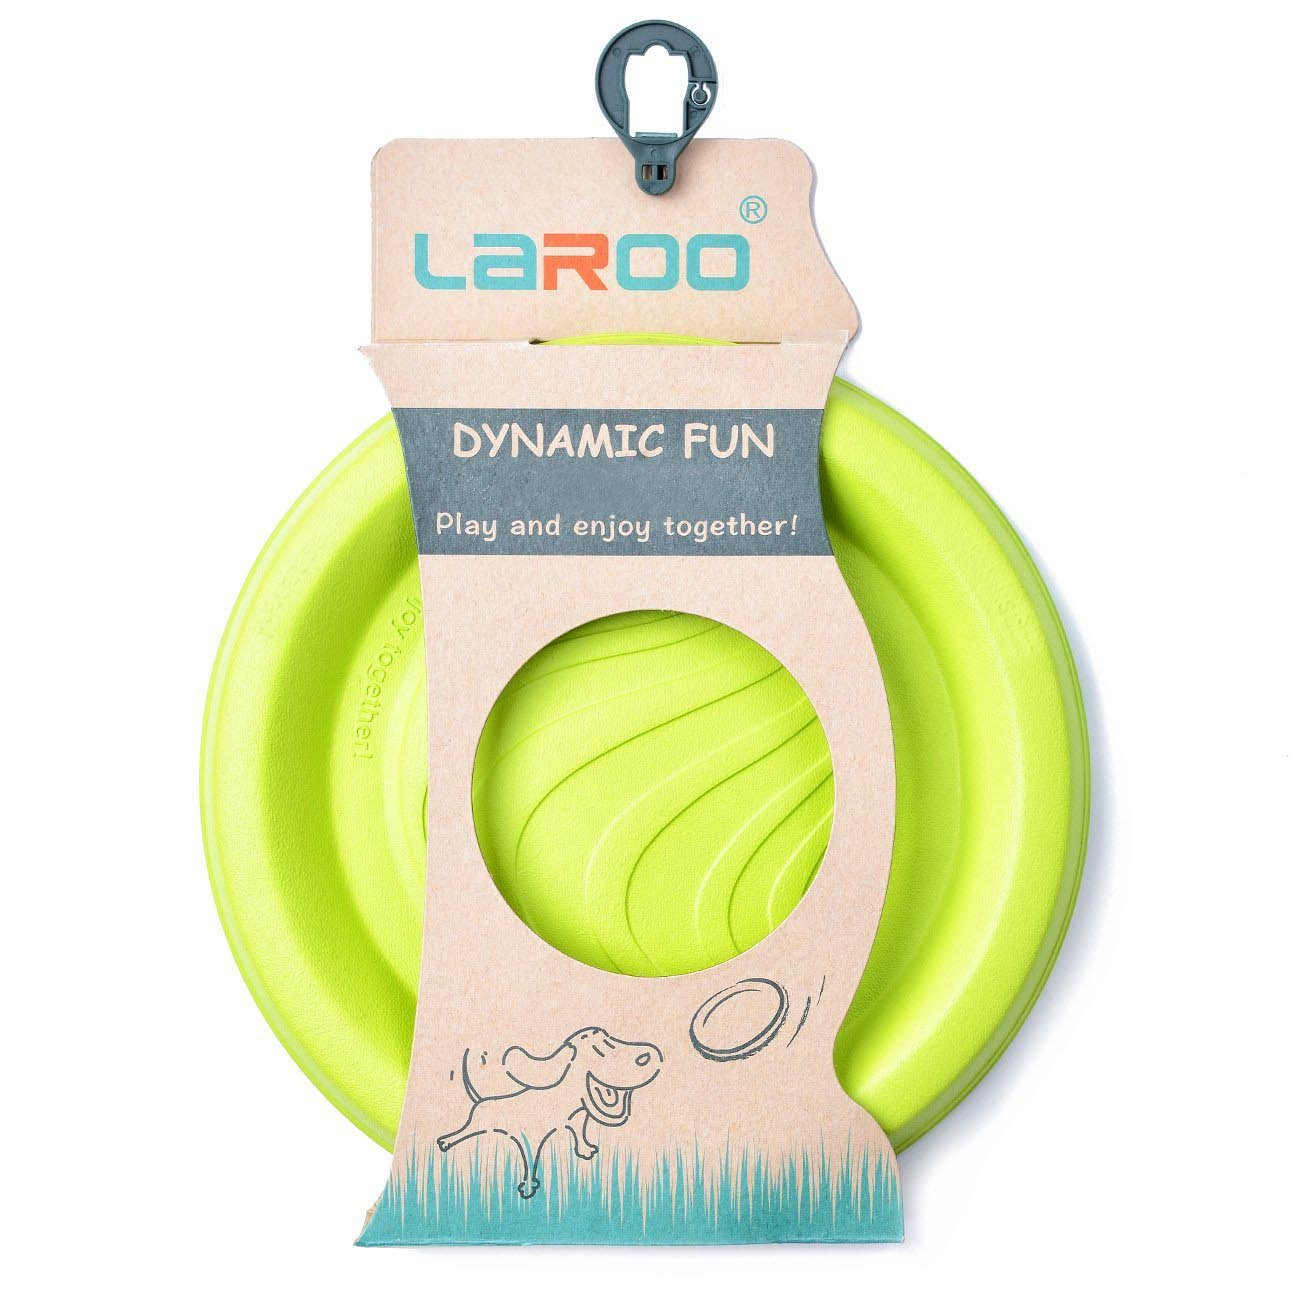 LaRoo Indestructible Flying Disc Dog Play Toy 100% Natural Non-toxic Durable Rubber Pet Chew Toy for Outdoor Interactive Fun with your Puppy - Green